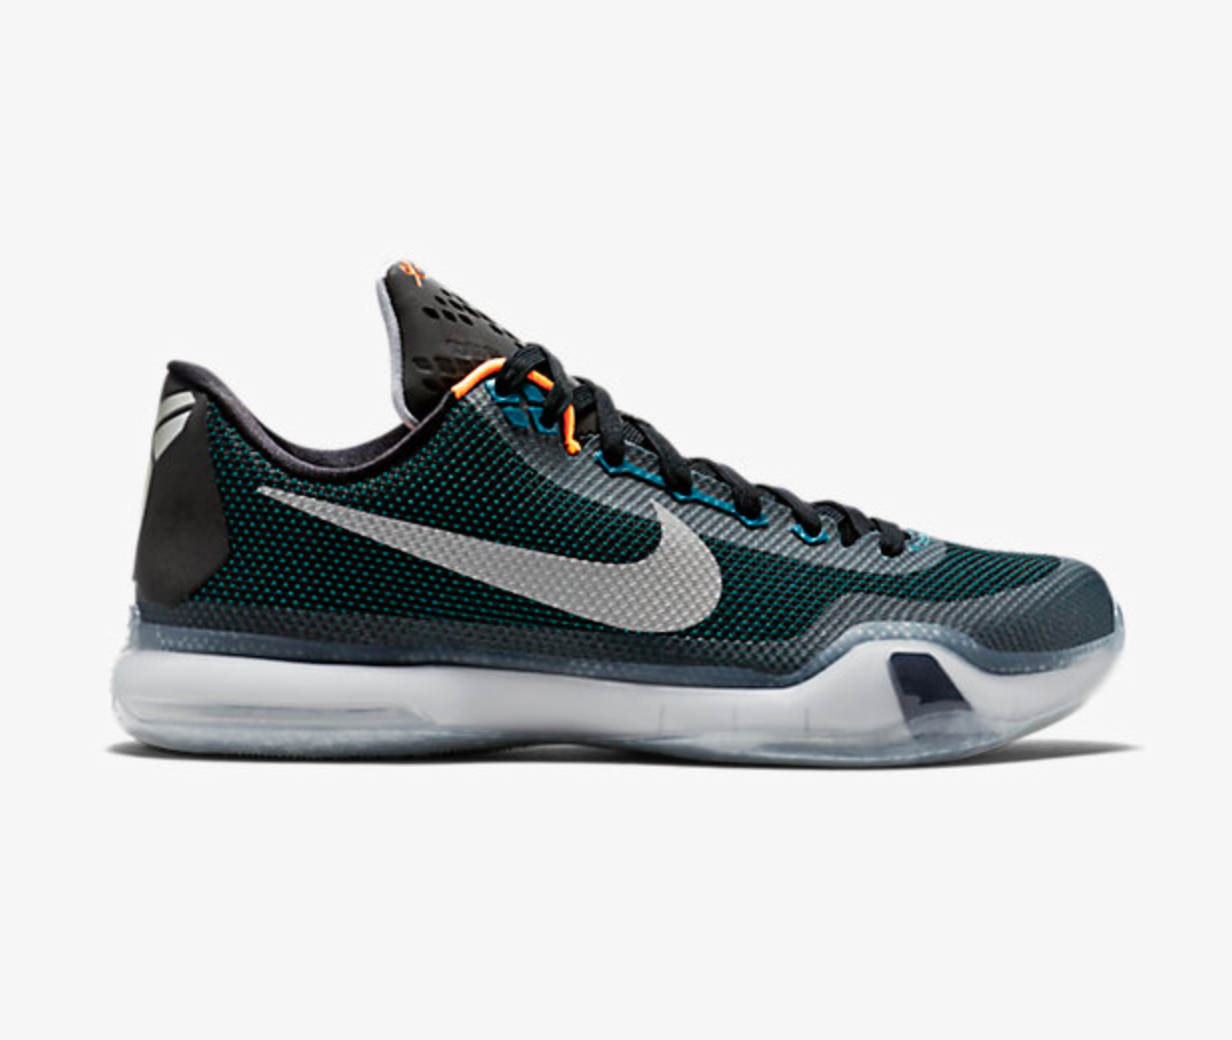 Men's Kobe X Teal/Bright Citrus/White/Reflect Silver